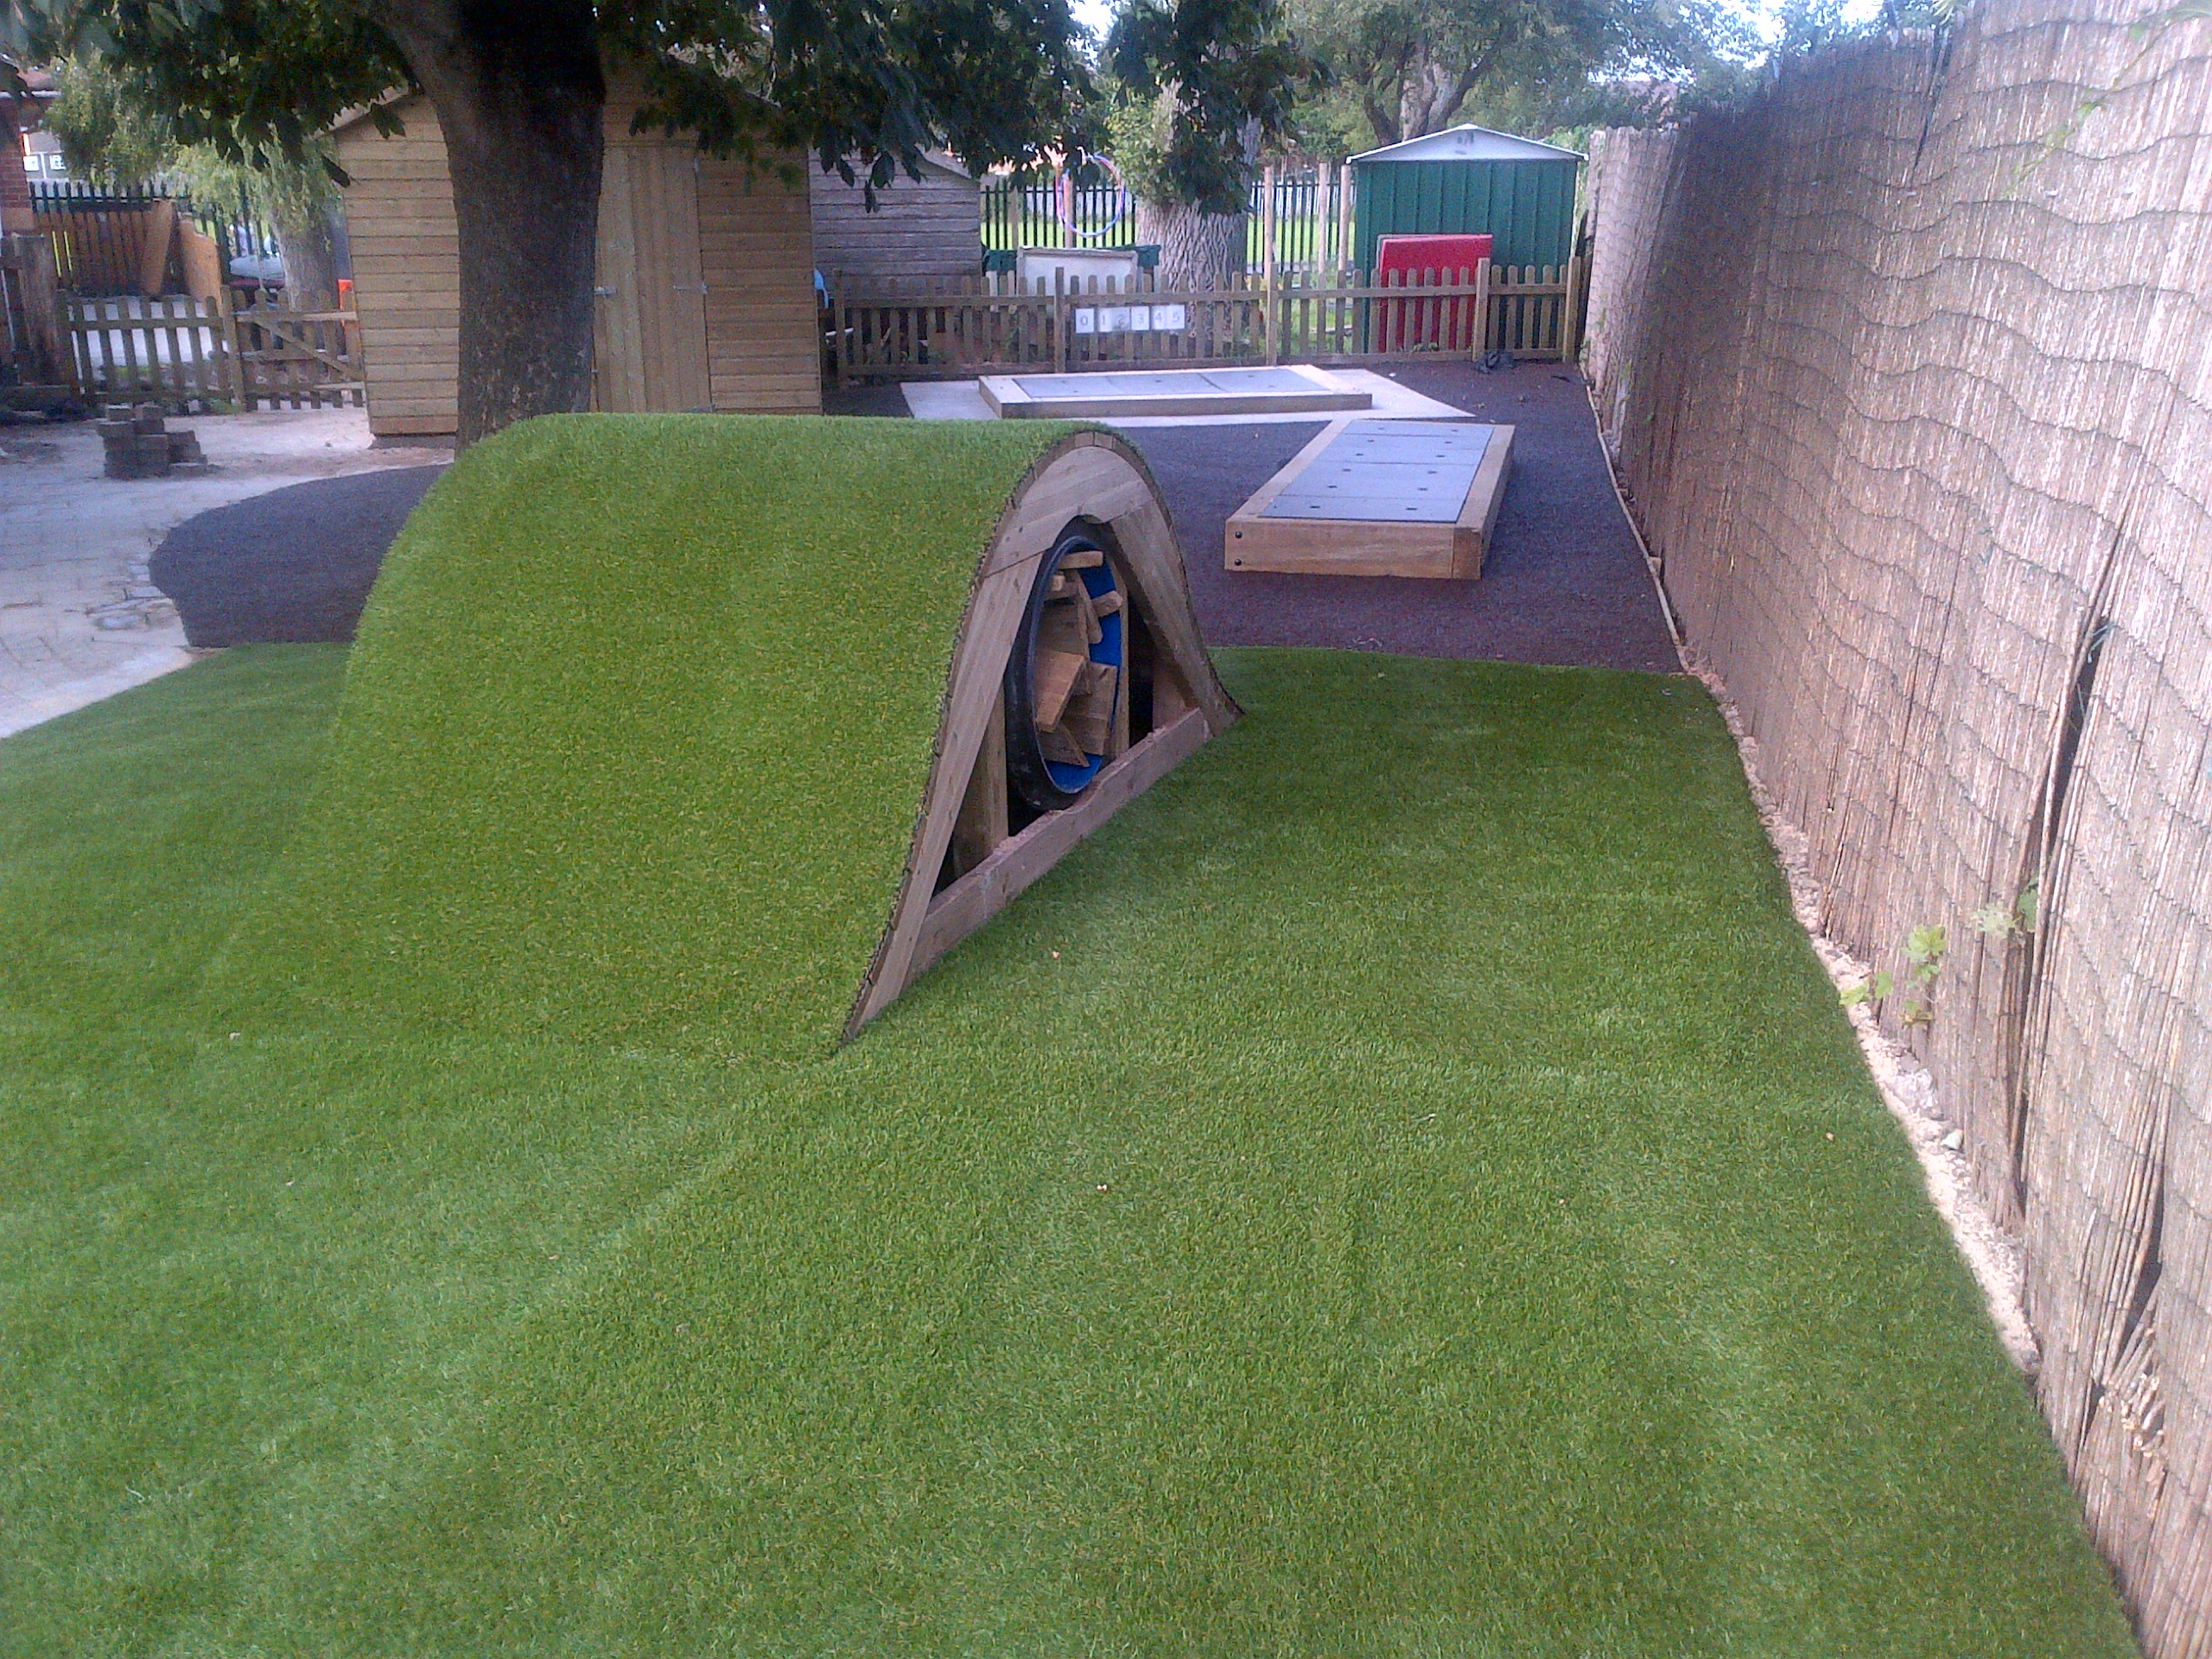 80m² artificial grass in Weston Super Mare